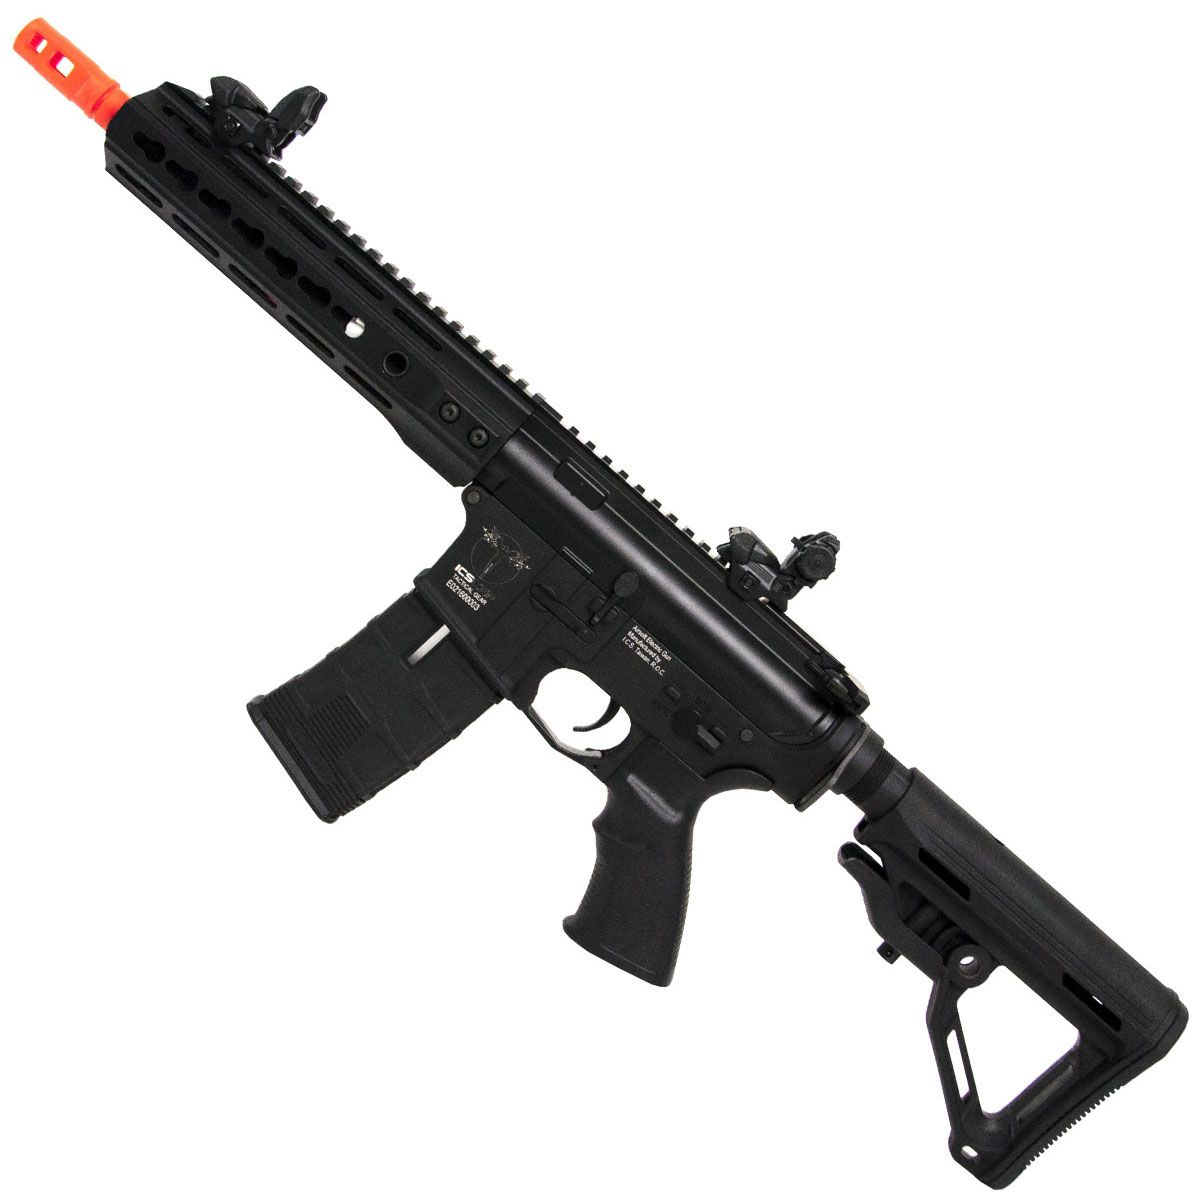 Rifle de Airsoft ICS M4 Transform CXP-UK1 Full Metal Elétrico